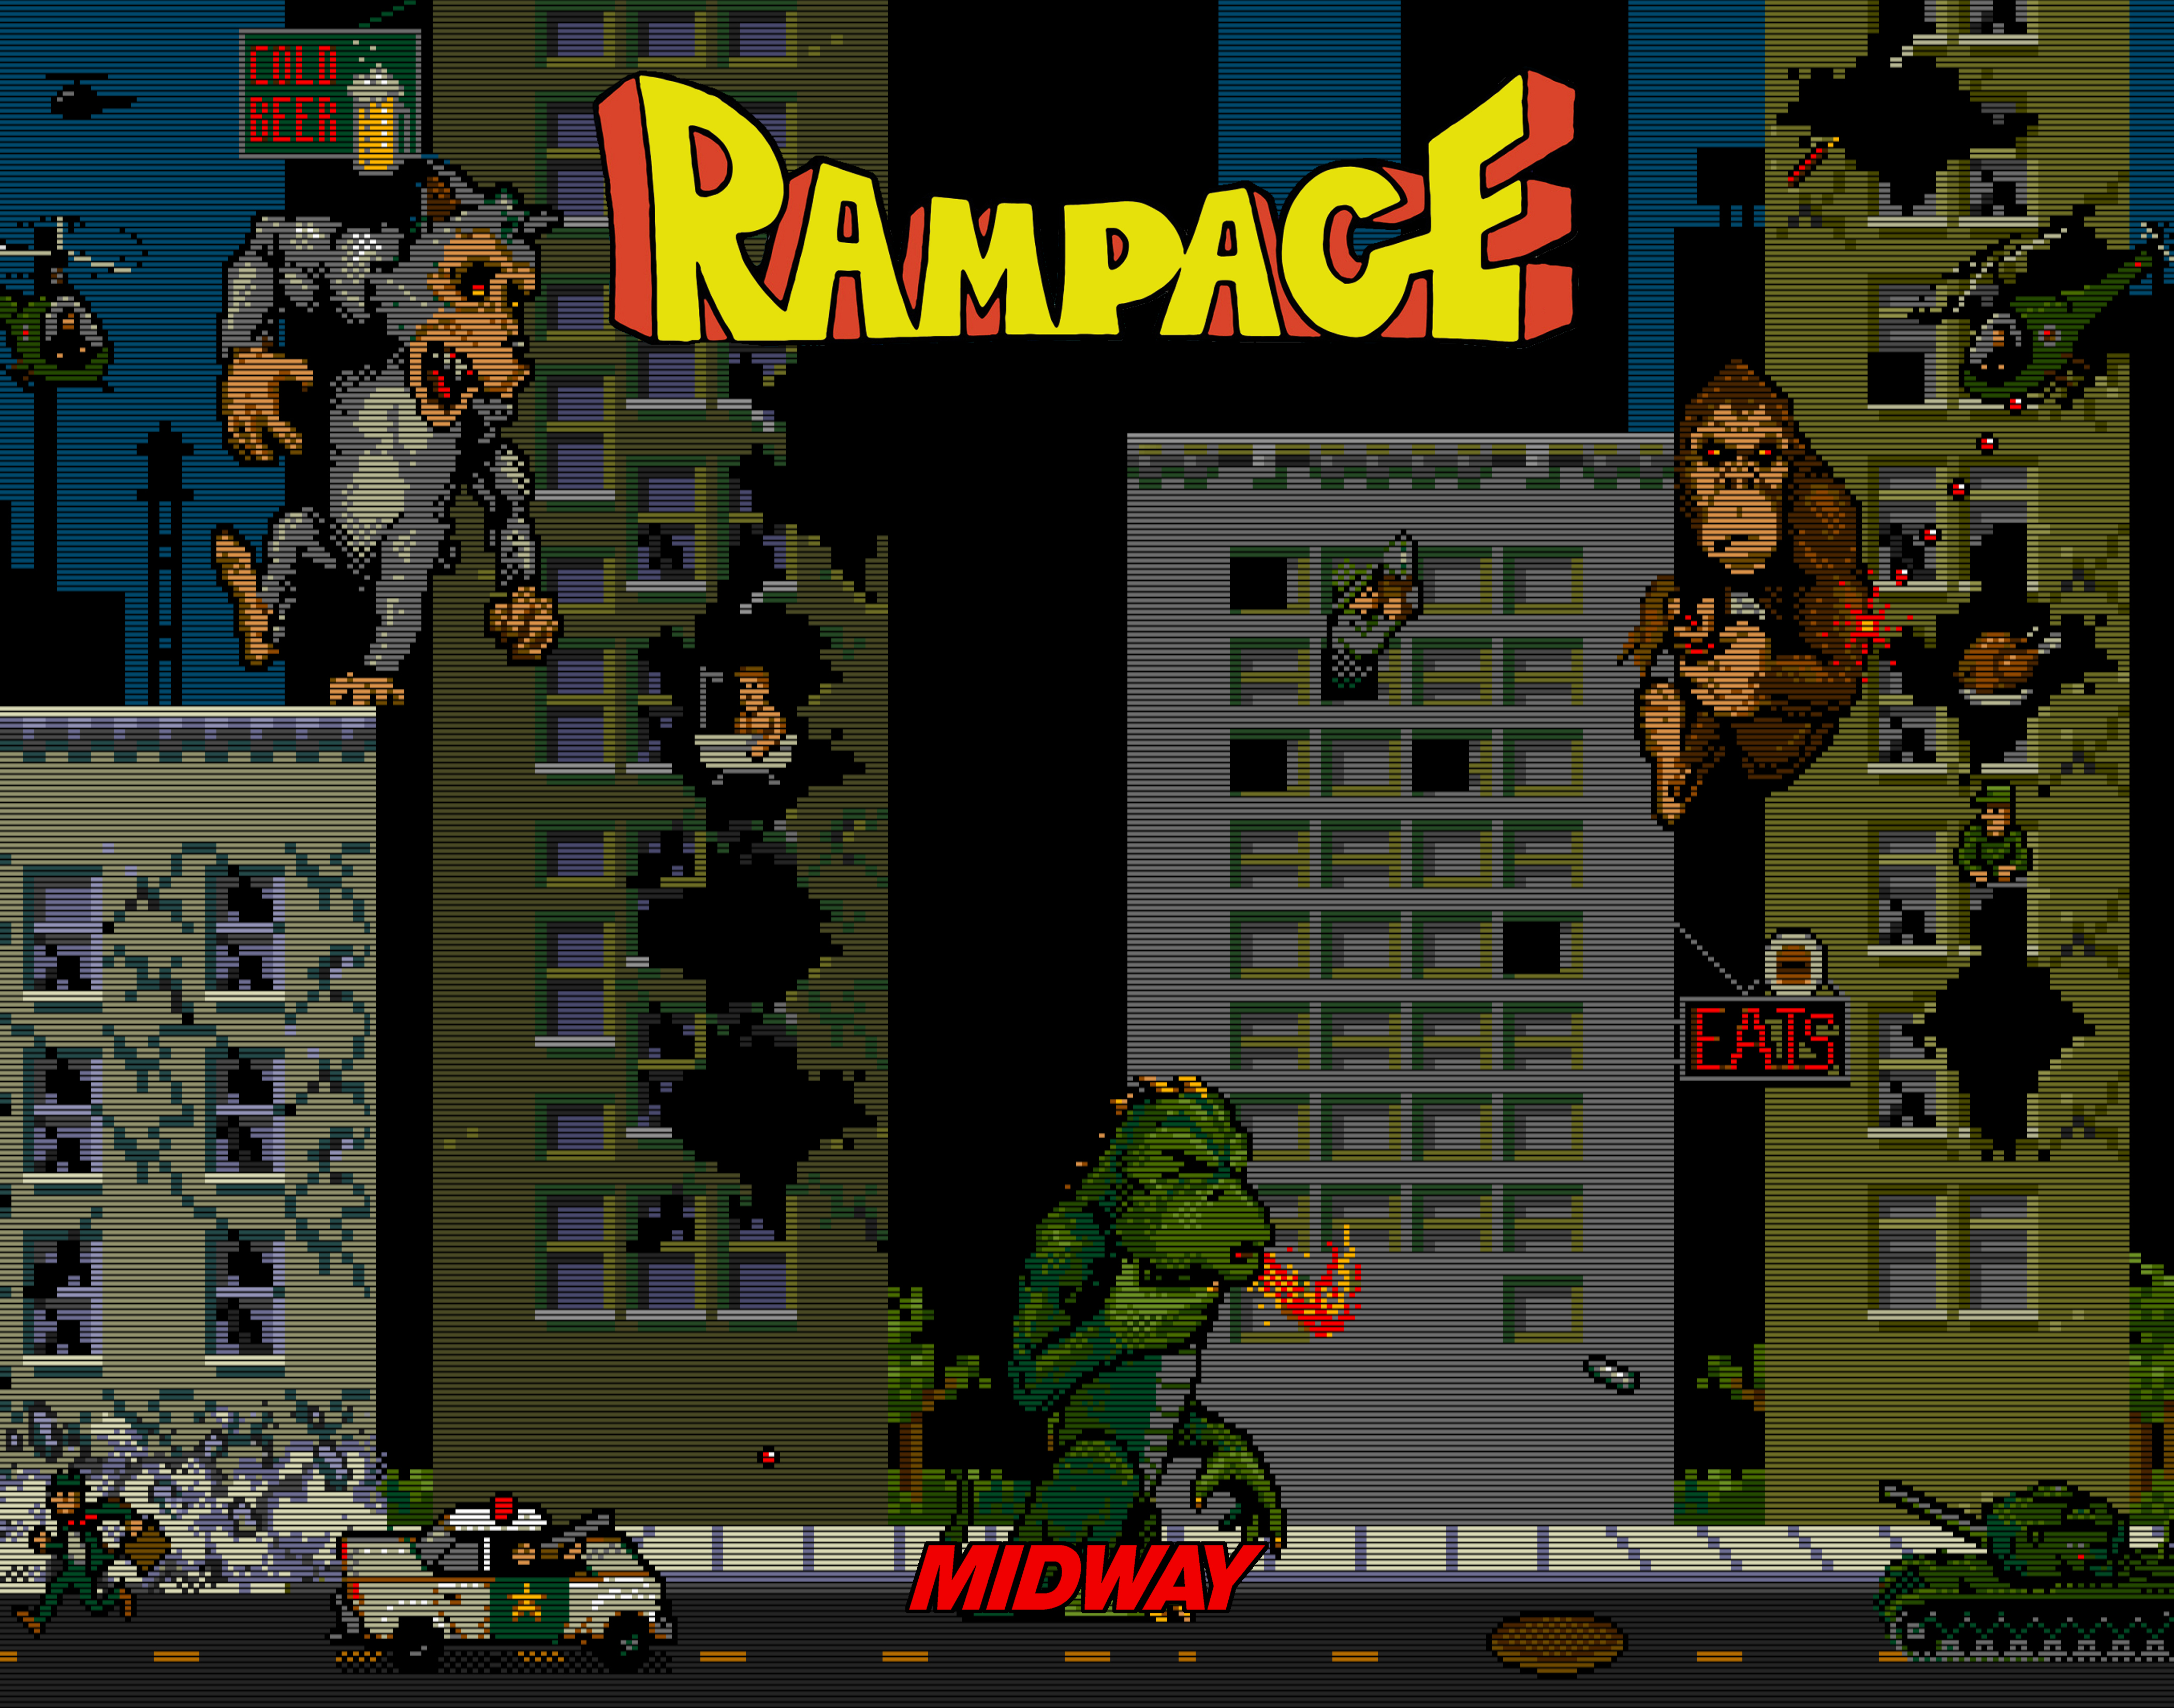 All Apologies The Rampage